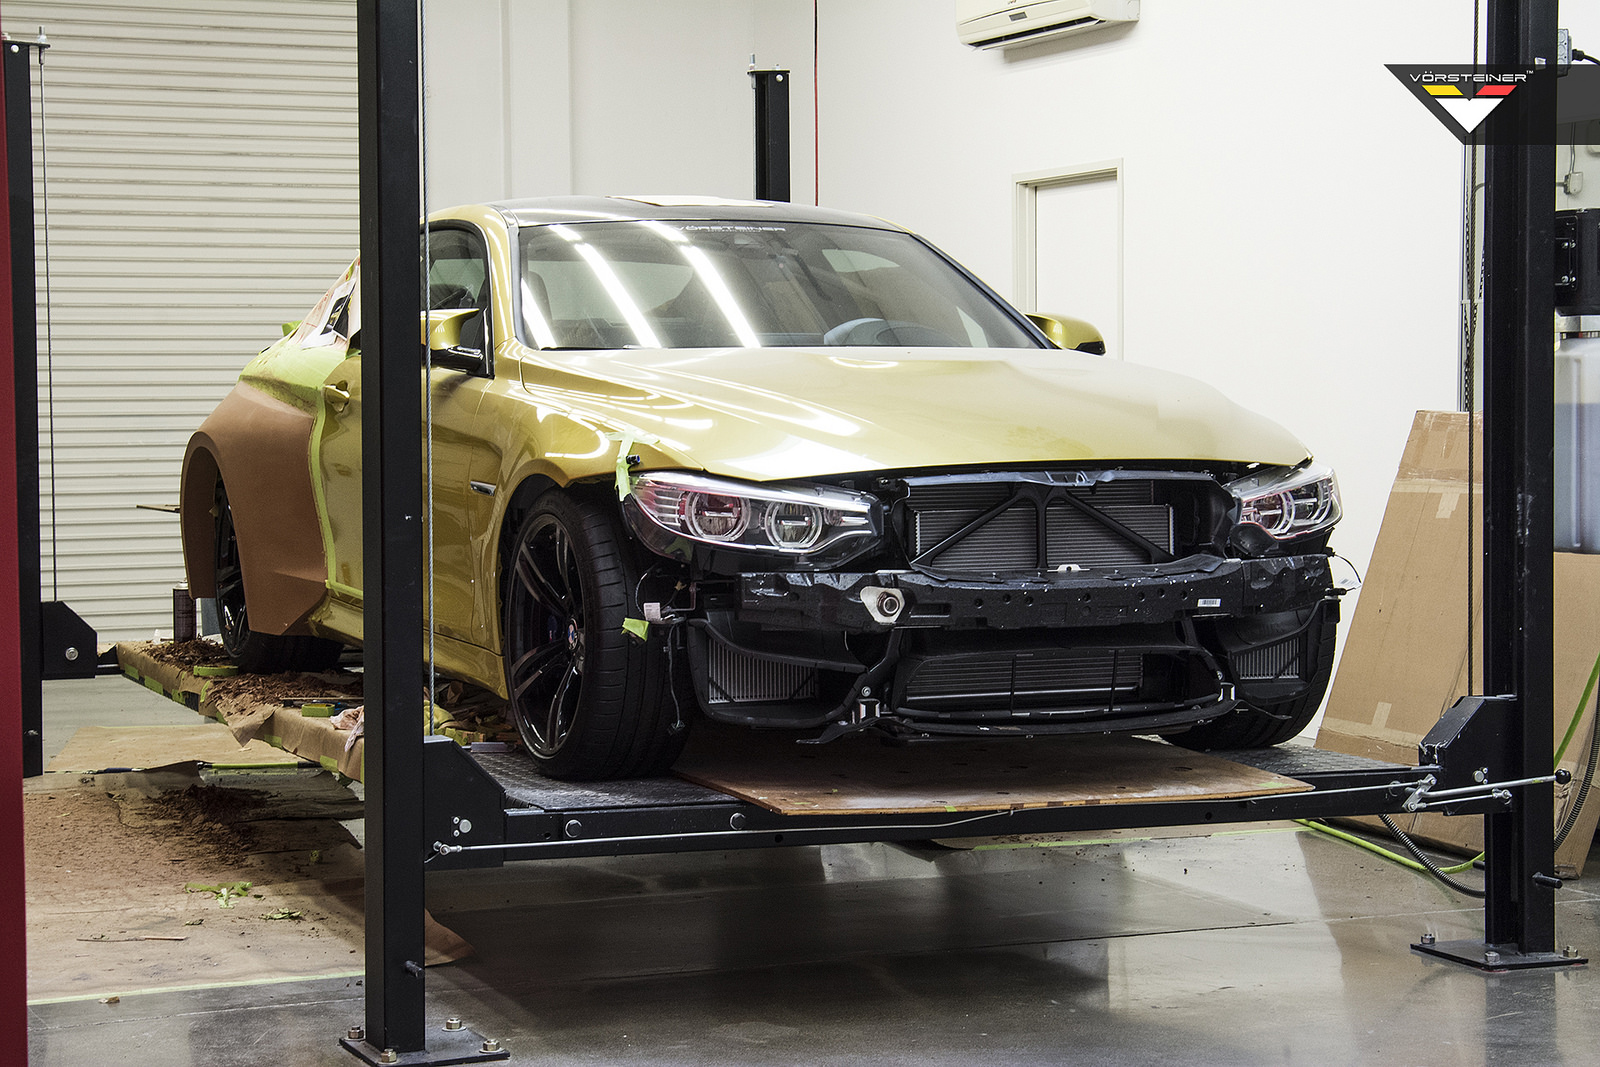 Development of the GTRS4 Wide Body for the F82 M4 Image 13